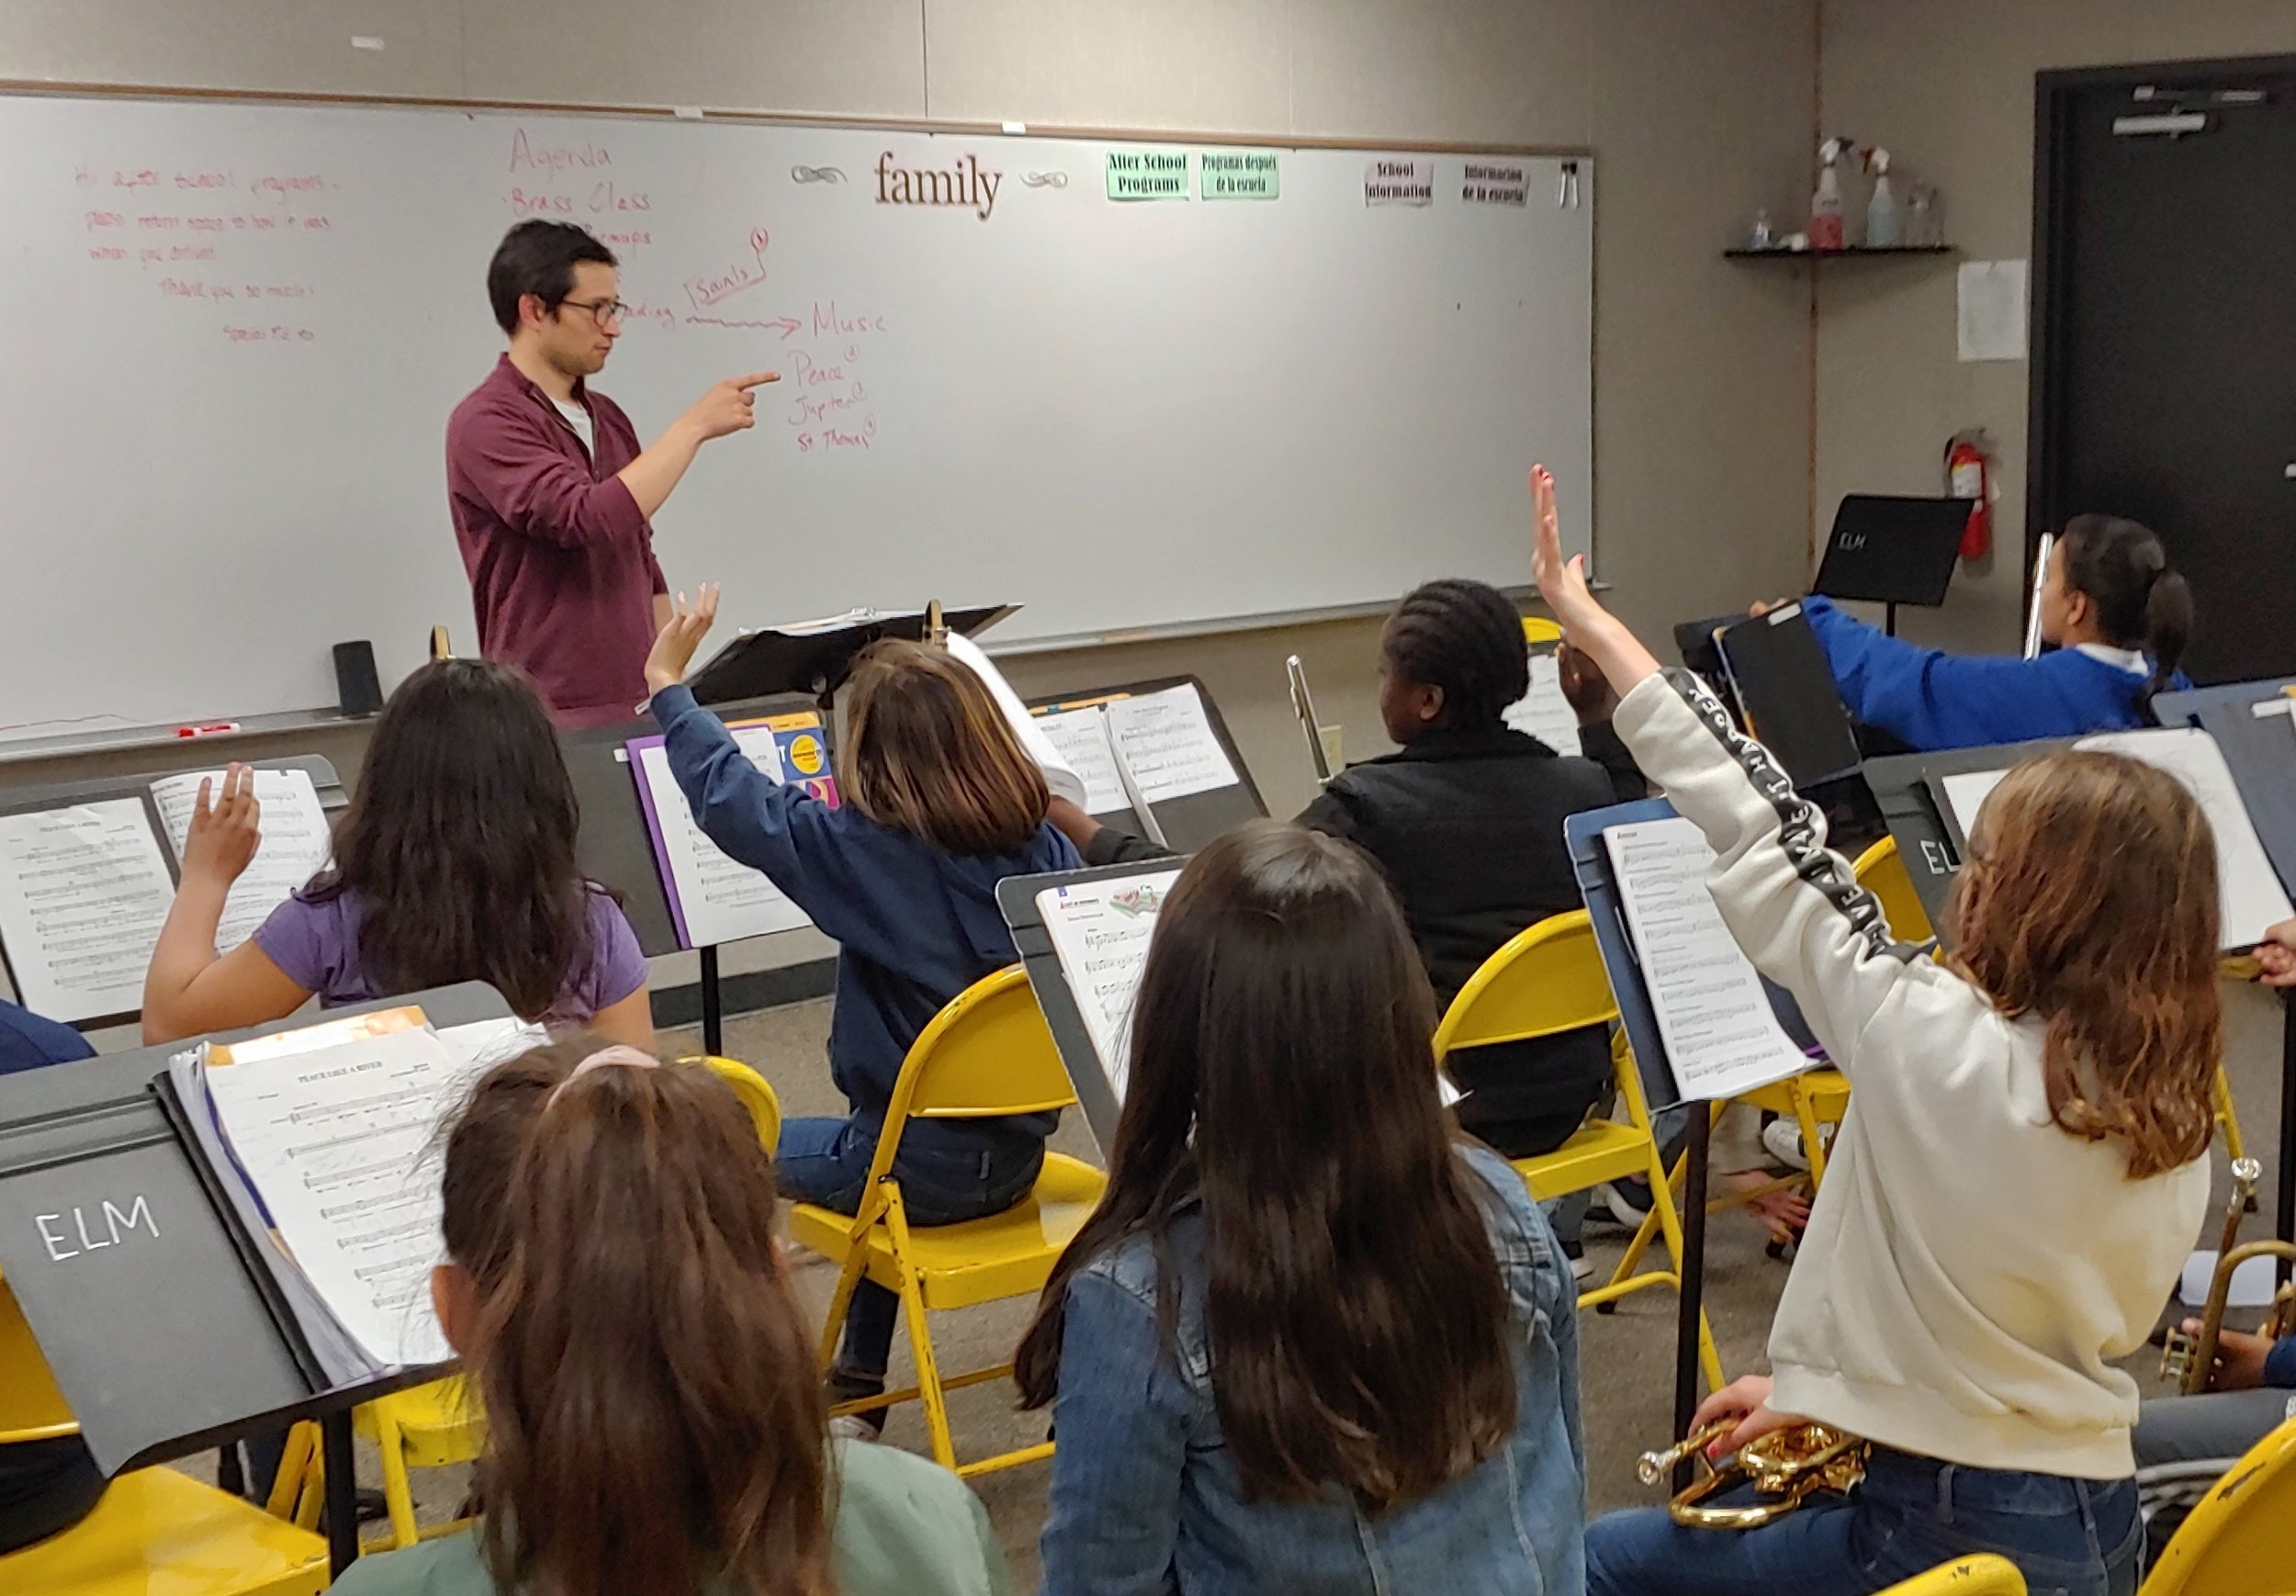 Musicianship is an important element of music education at ELM, curiosity drives interest.